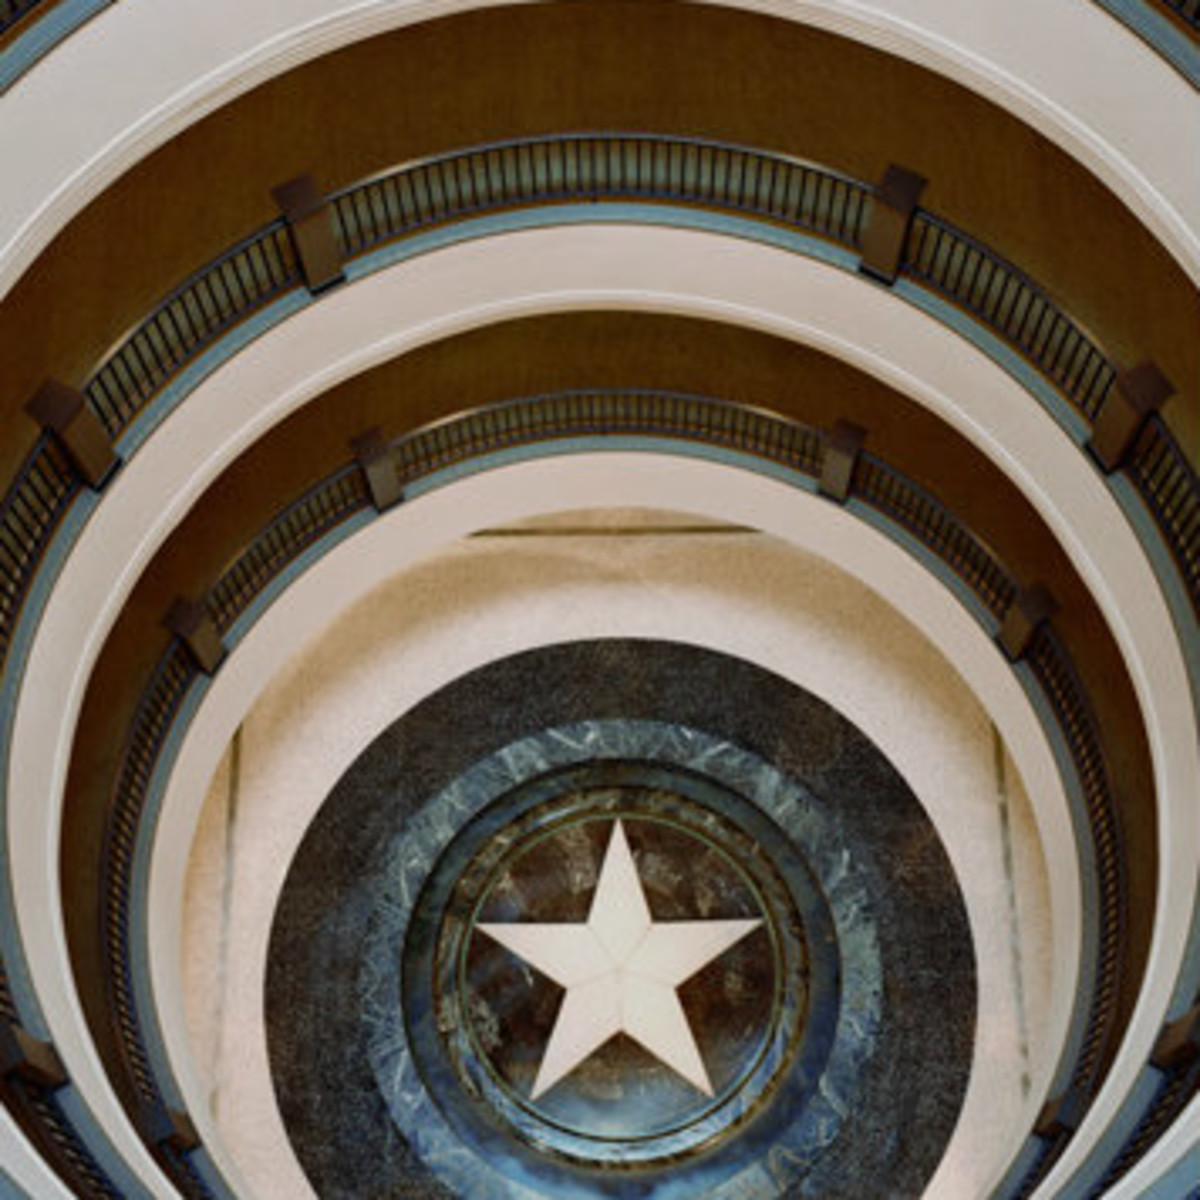 Rotunda at the Decorative Center Houston